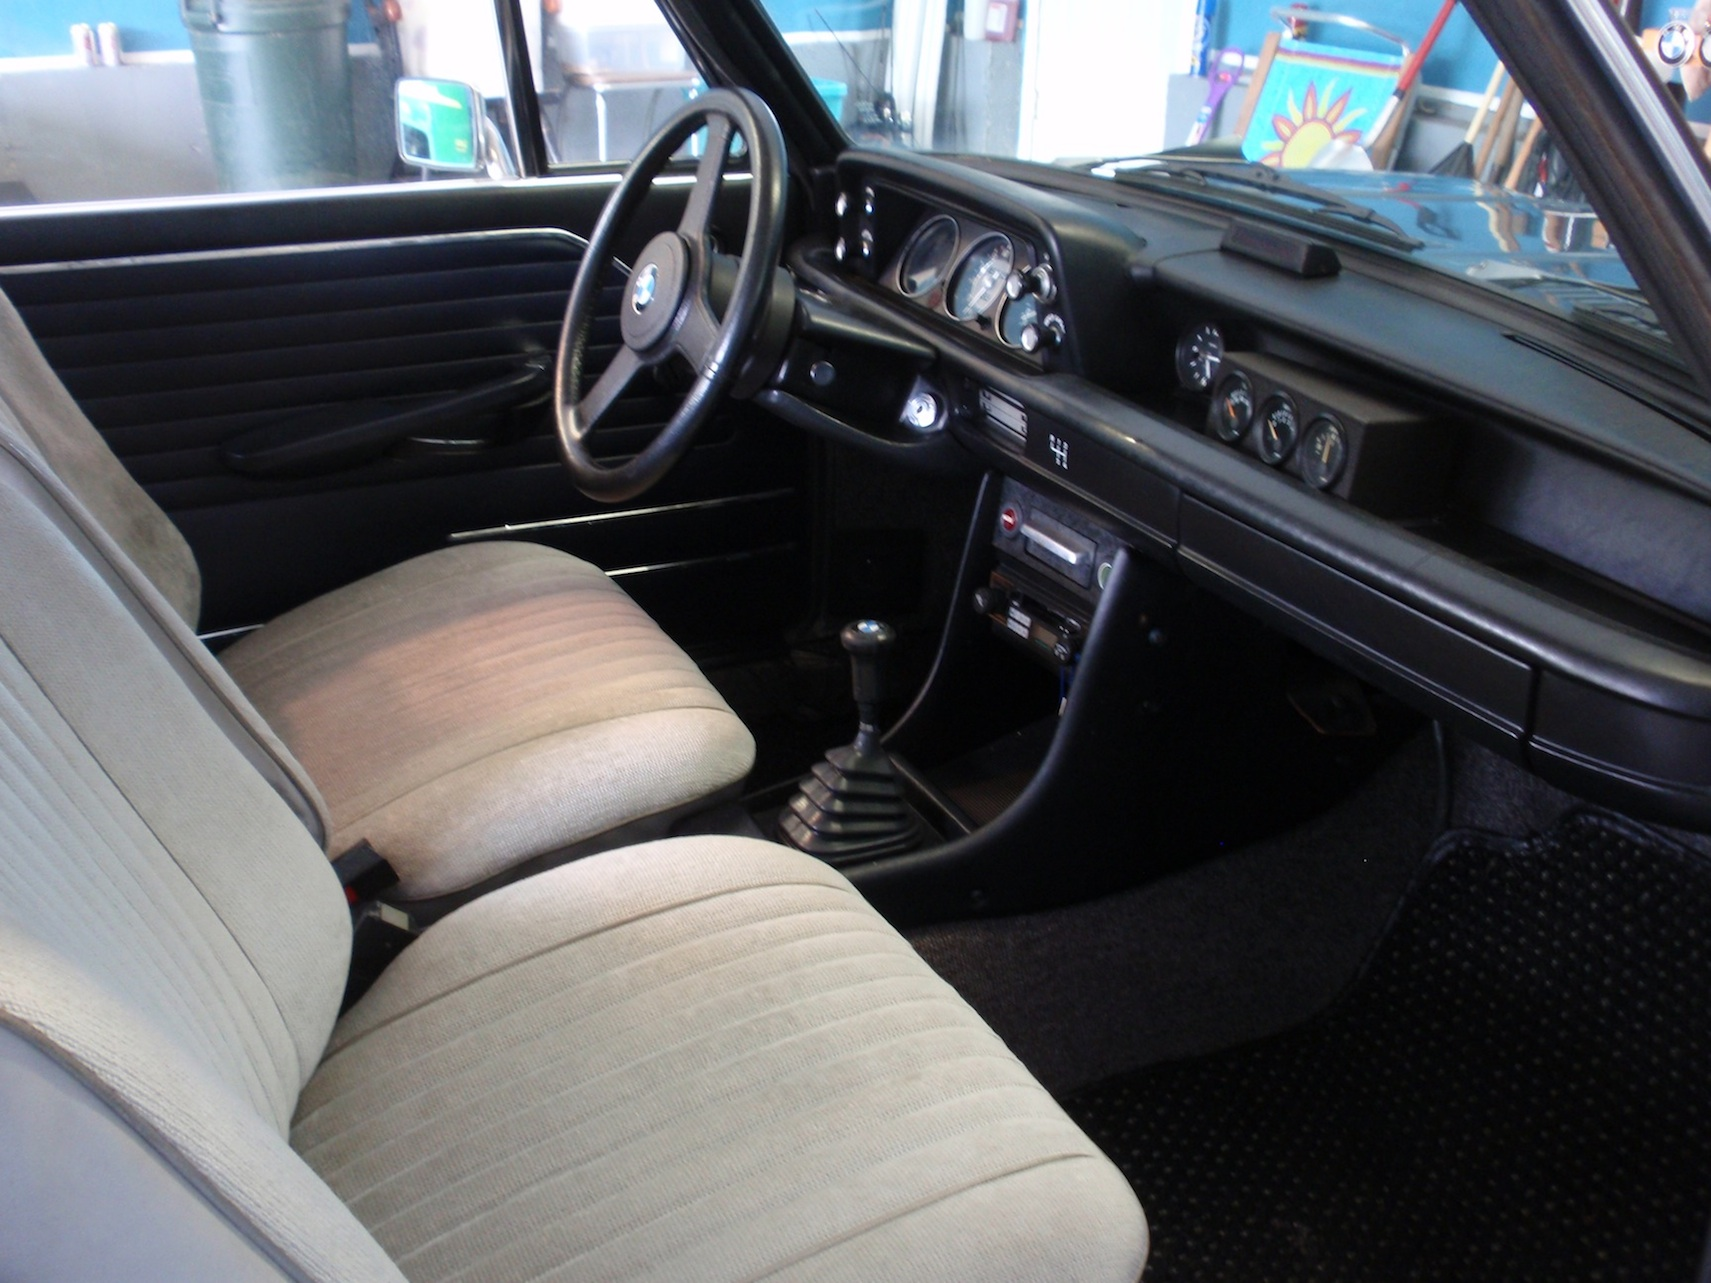 '73 2002tii with Alpina A4 Injection in MA-alpina-interior.jpg